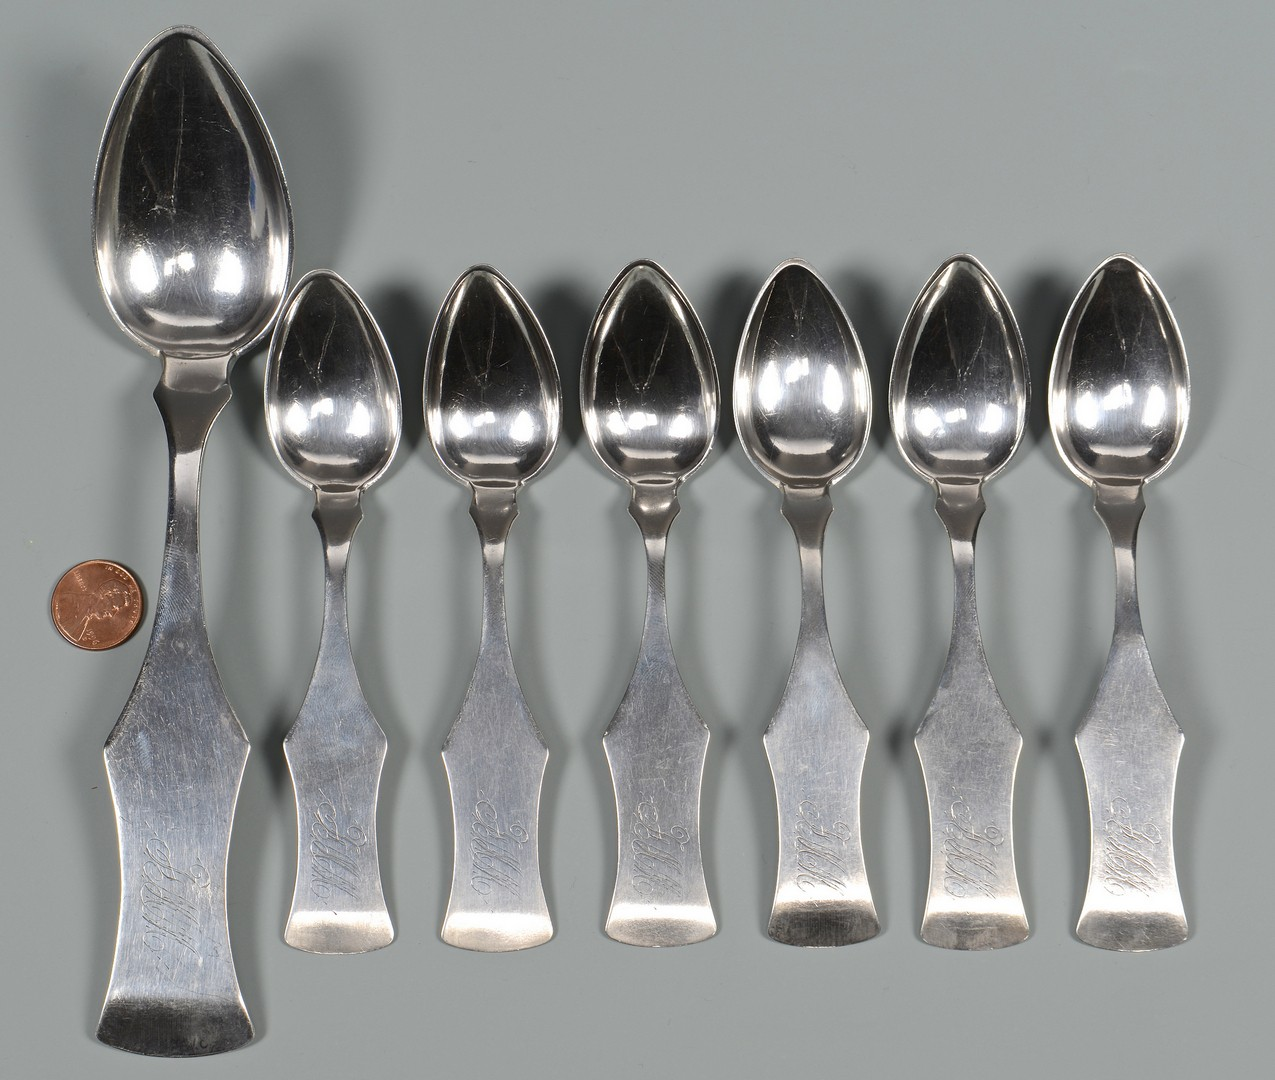 Lot 53: 7 Spears KY Coin Silver Spoons